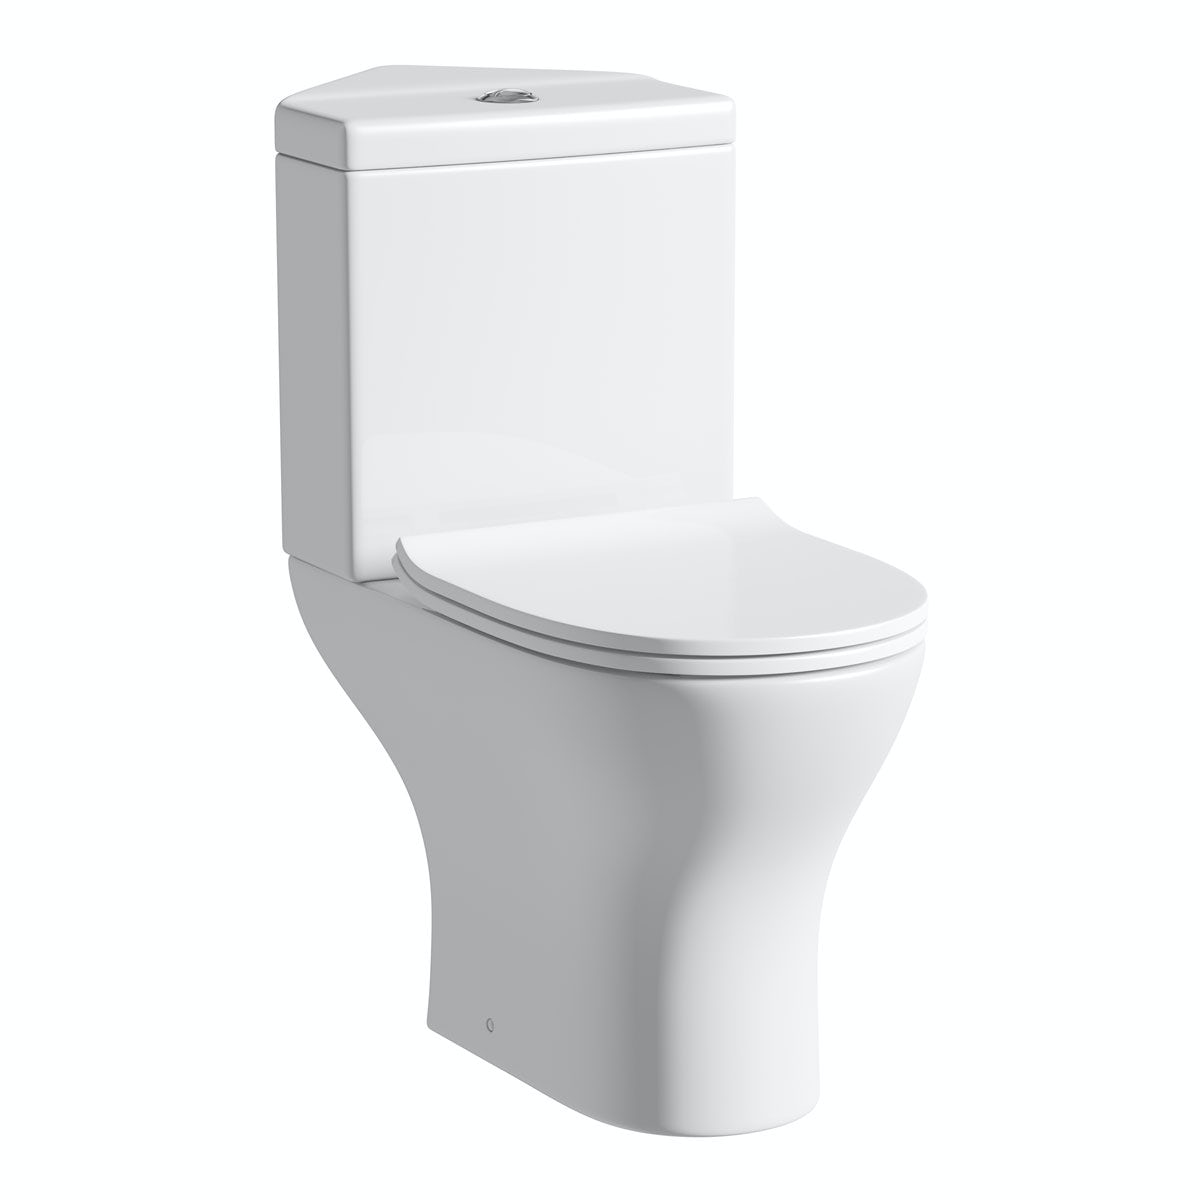 Orchard Derwent round compact corner close coupled toilet with slimline soft close toilet seat with pan connector